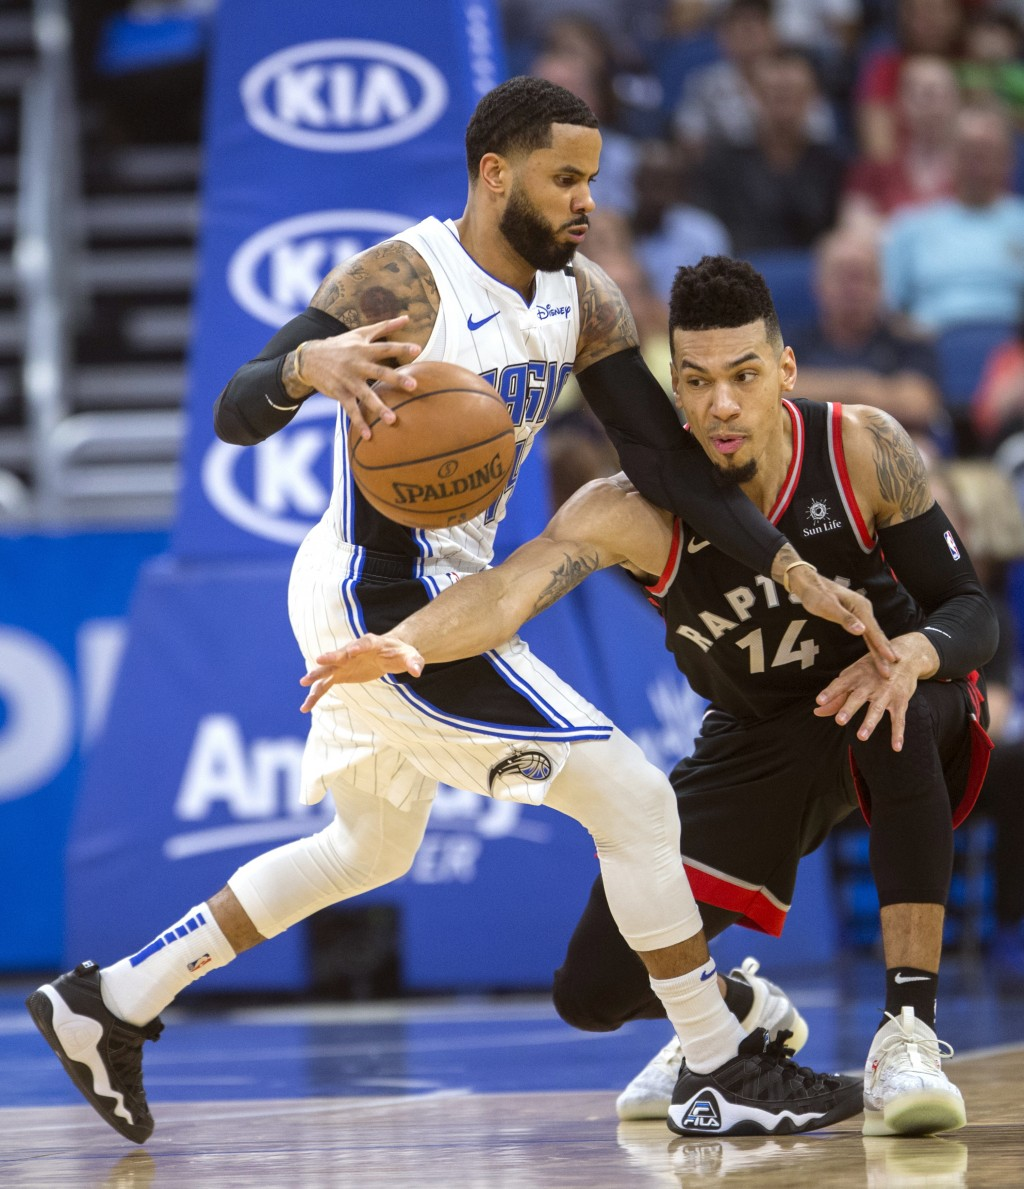 Orlando Magic guard D.J. Augustin (14) dribbles through Toronto Raptors guard Danny Green (14) during the first half of an NBA basketball game in Orla...